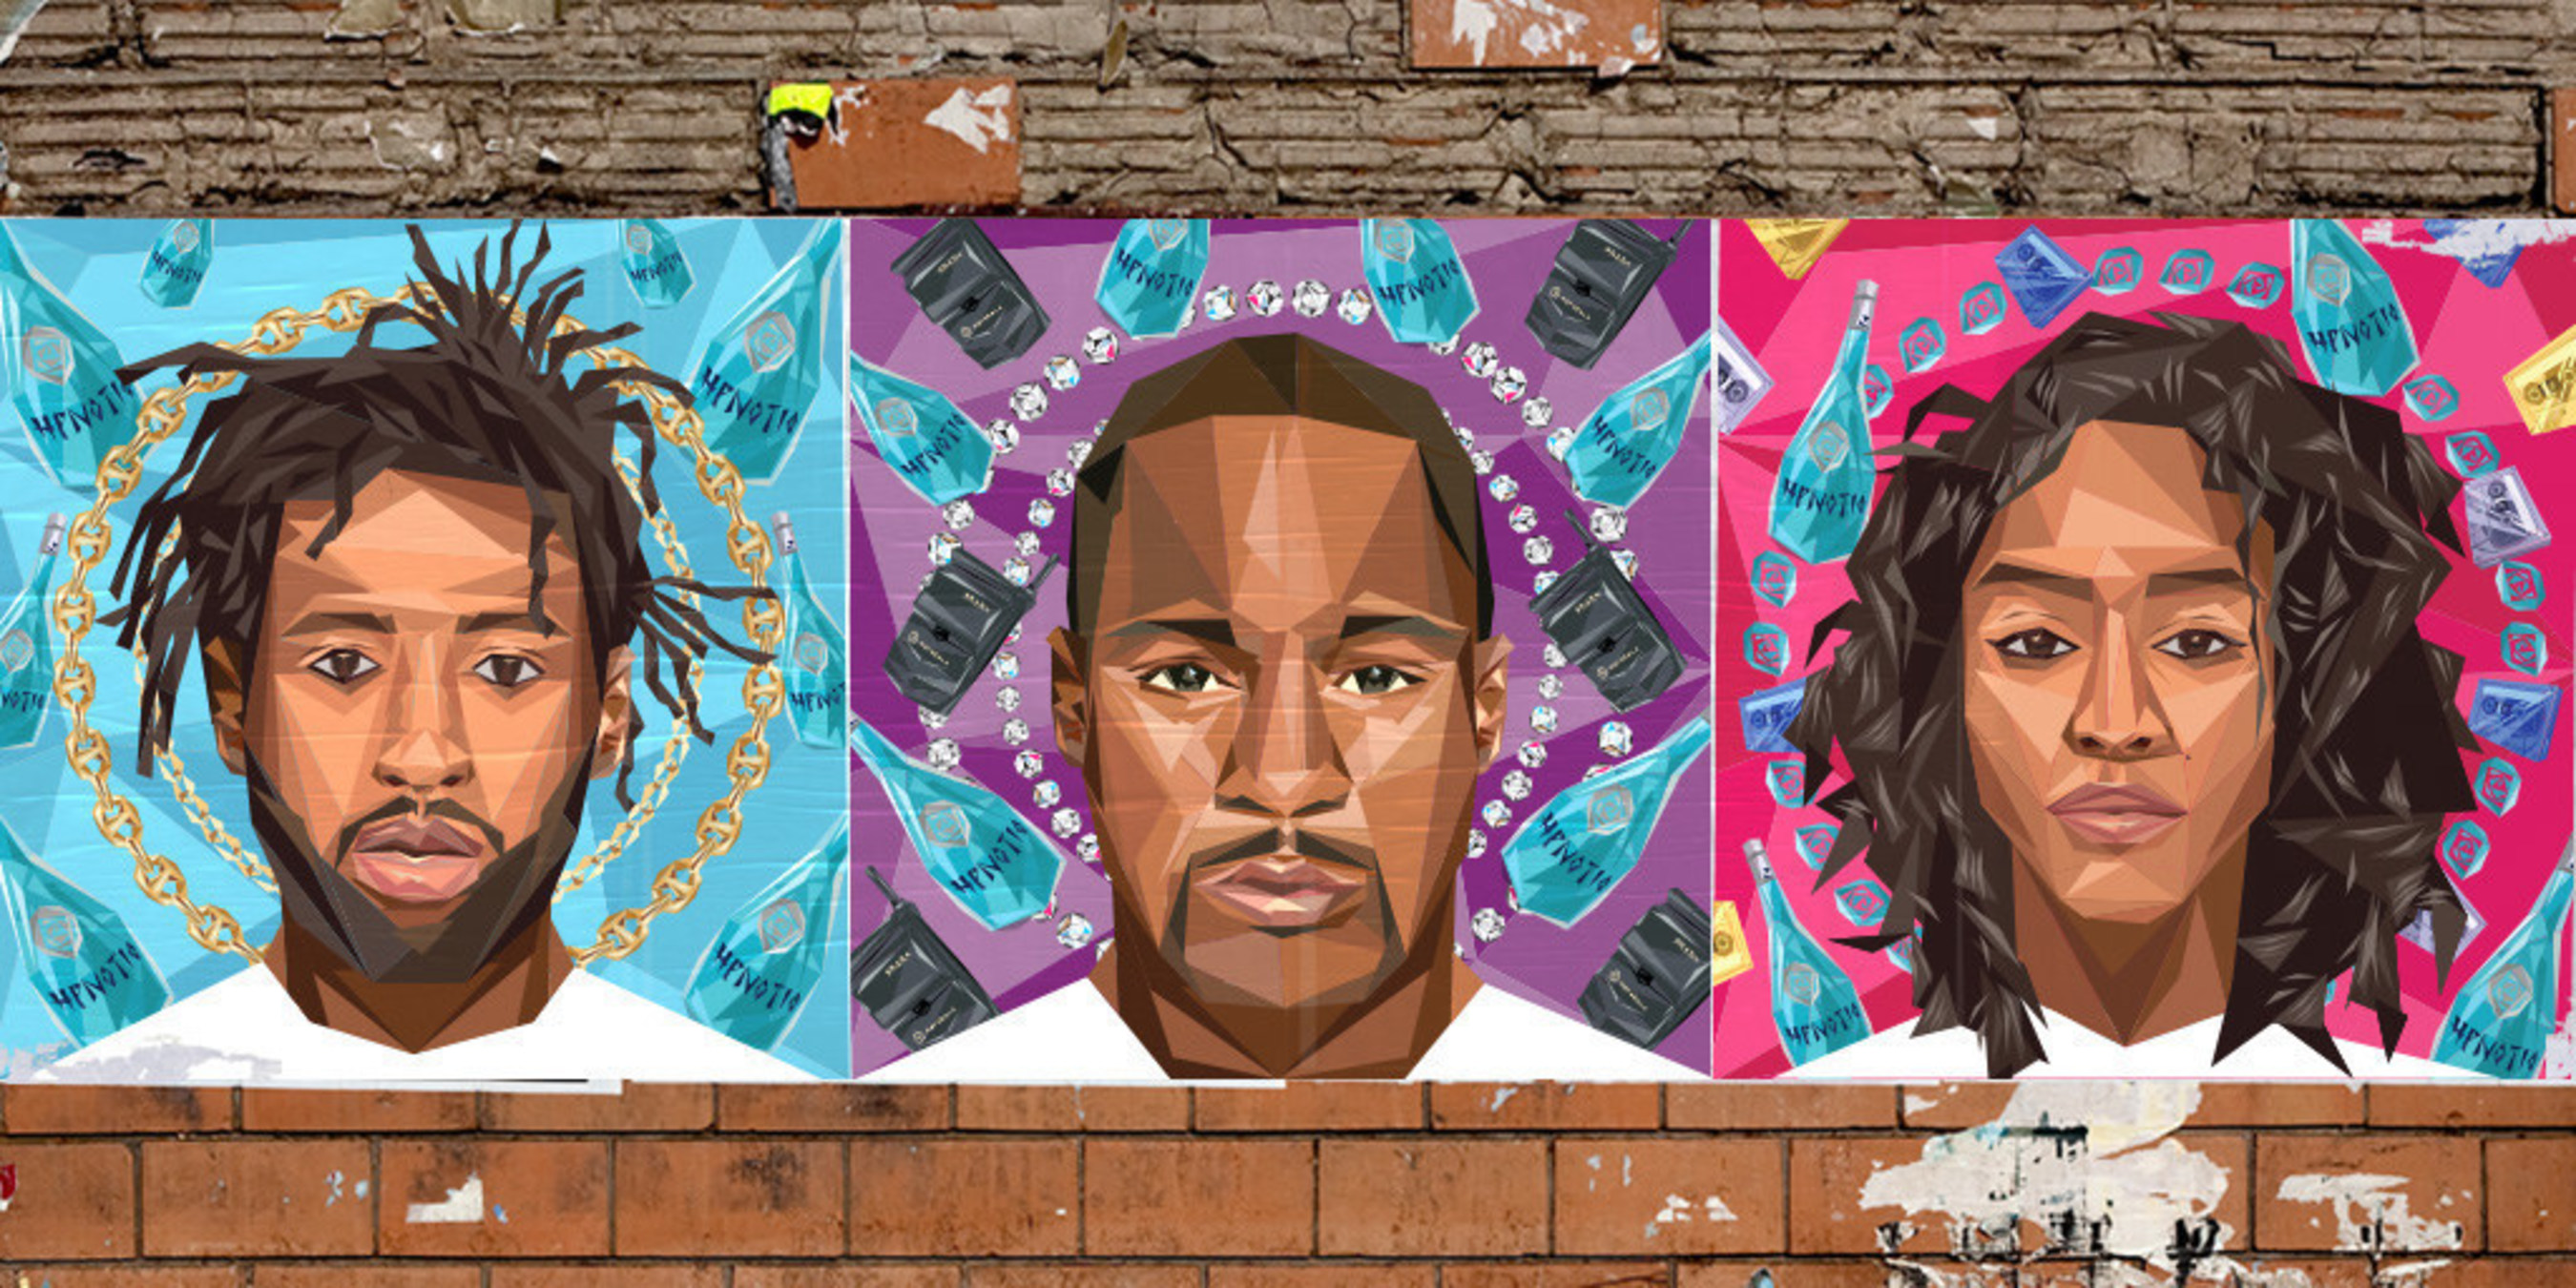 Portraits of Hpnotiq #Since2001 ambassadors Yung Jake, Cam'ron and Va$htie Kola, created by artist and brand collaborator Naturel.